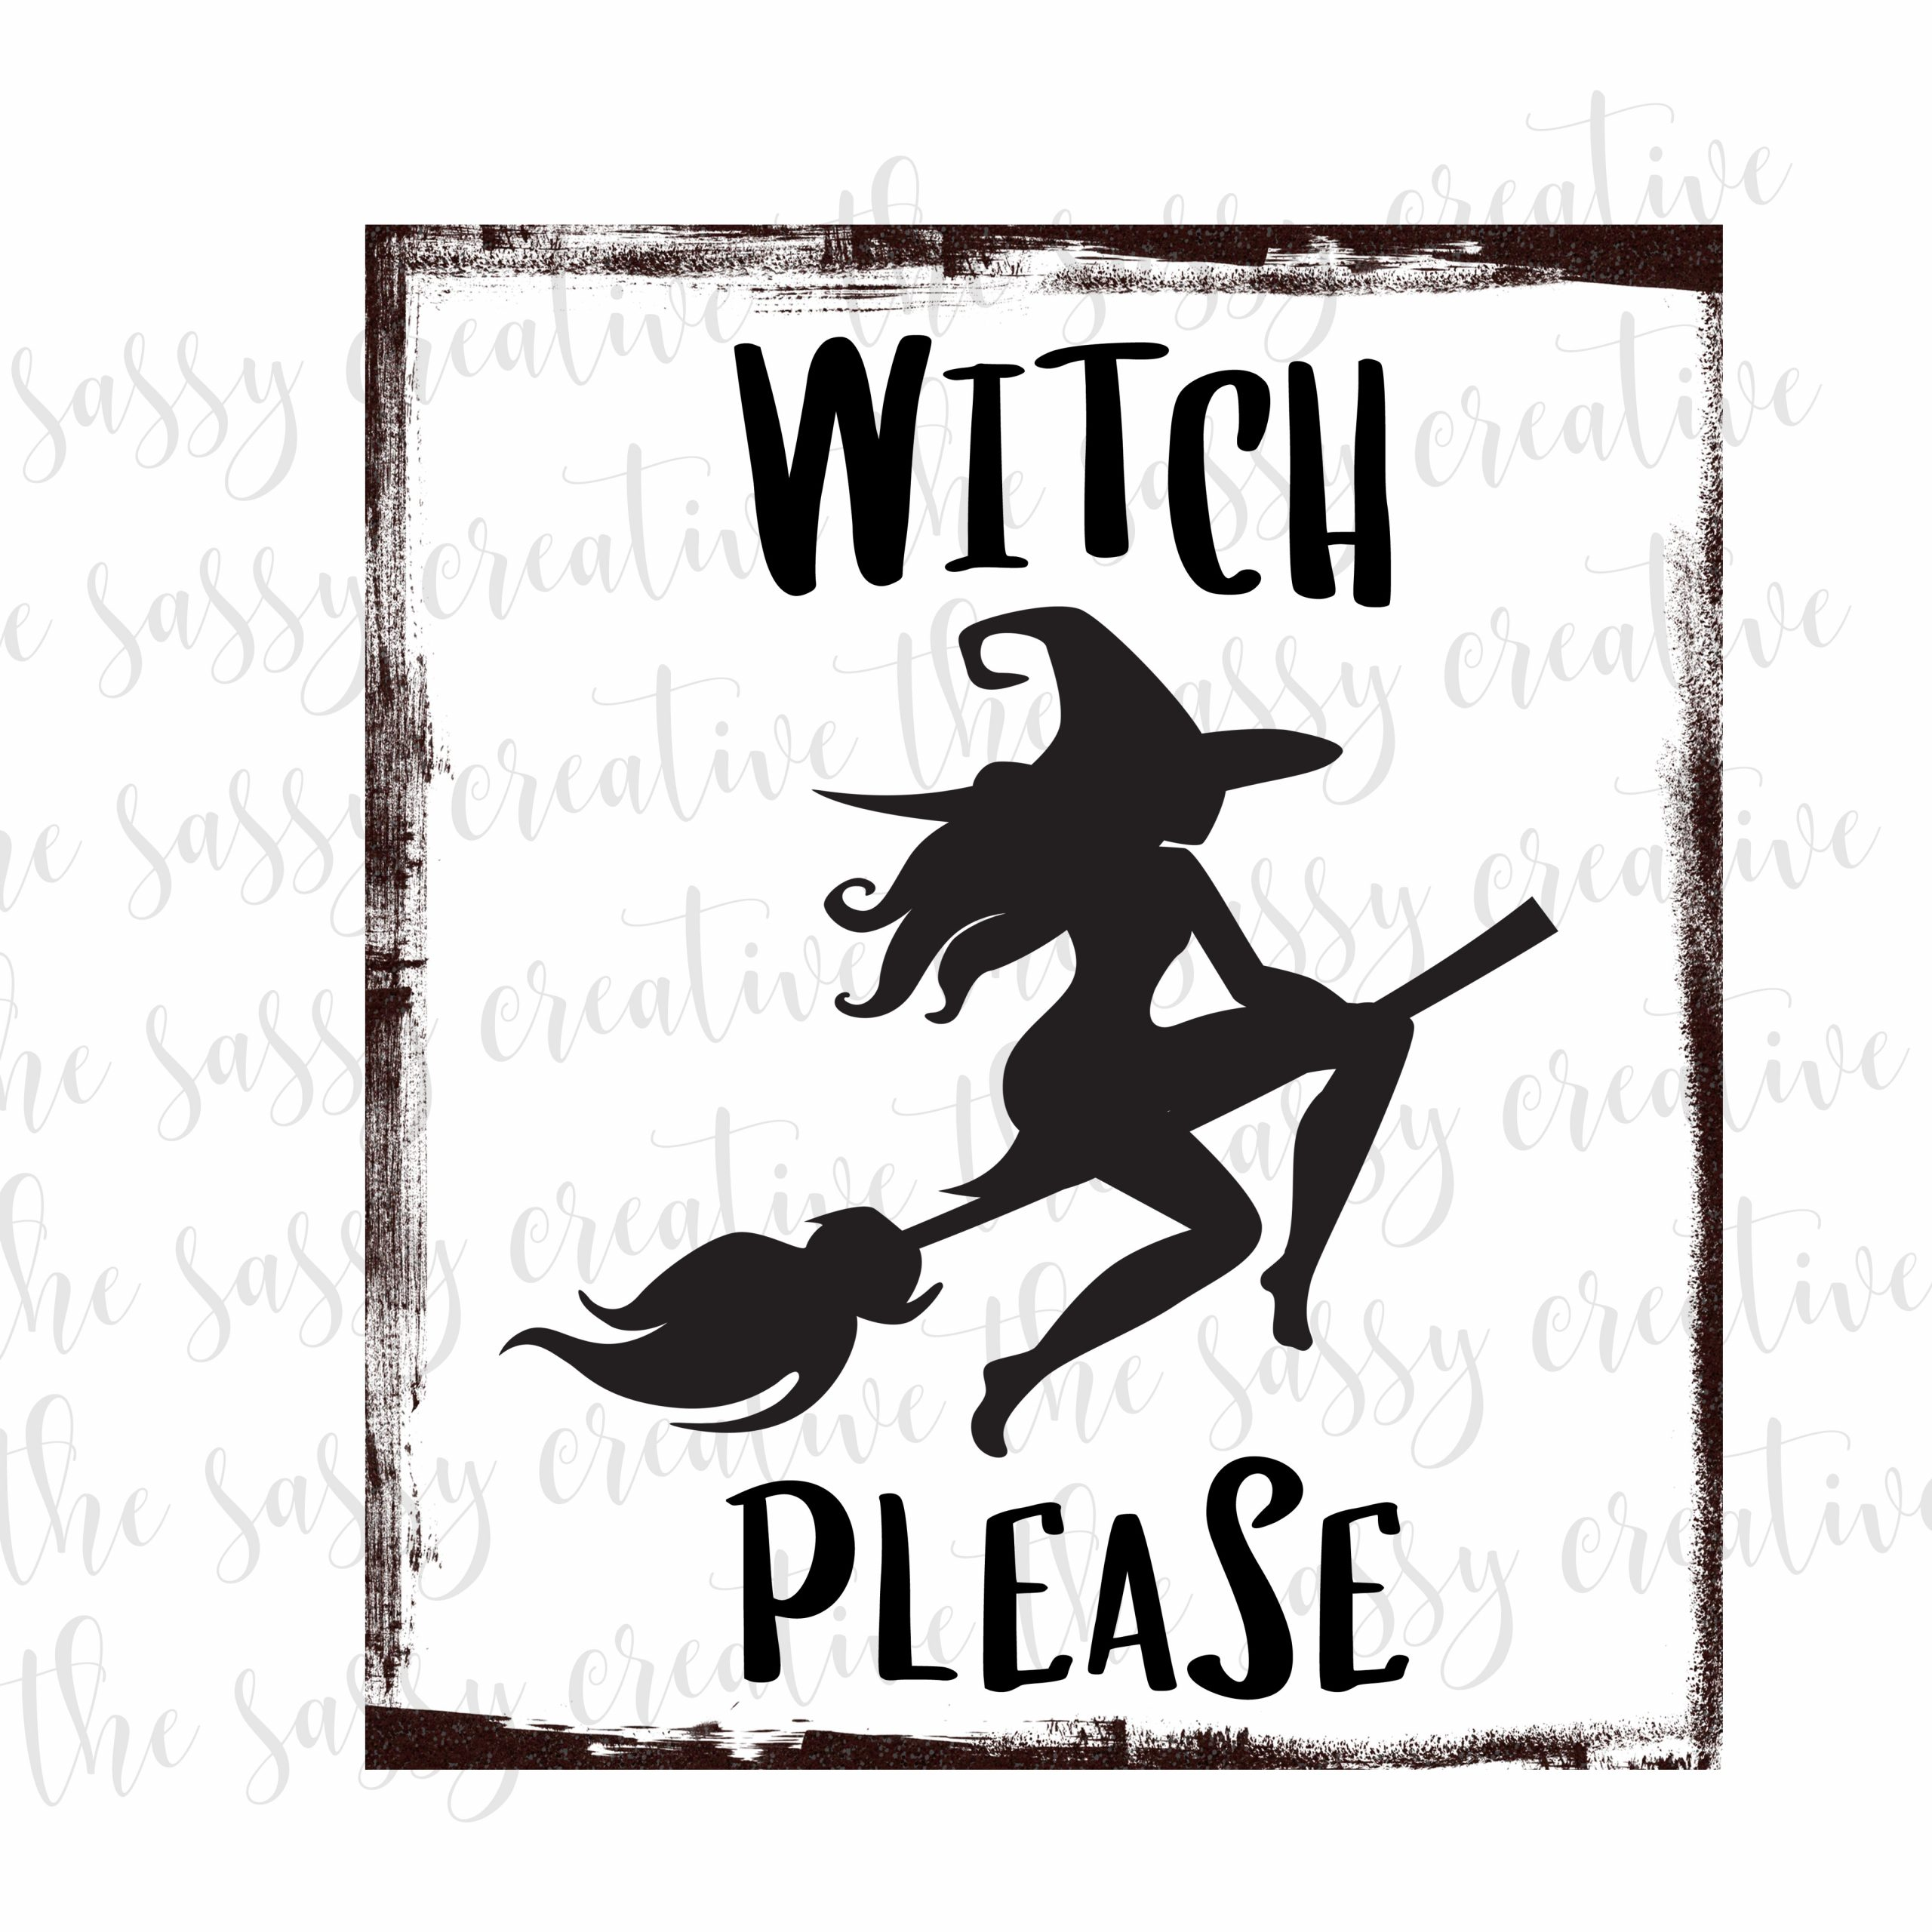 witchpleasecover